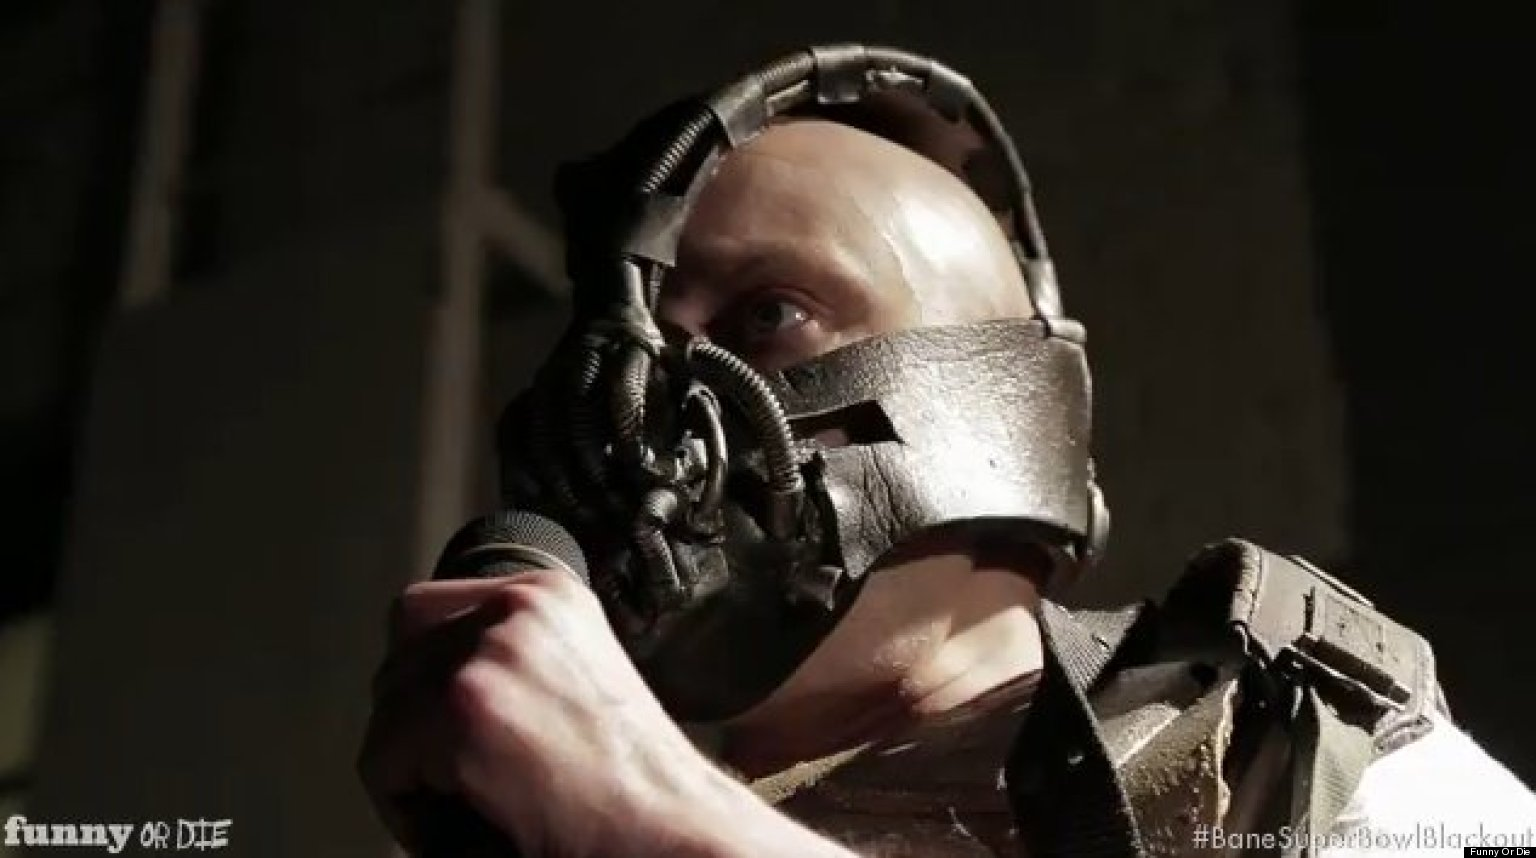 Bane Caused Super Bowl Blackout According To Funny Or Die (VIDEO)Obamacare Funny